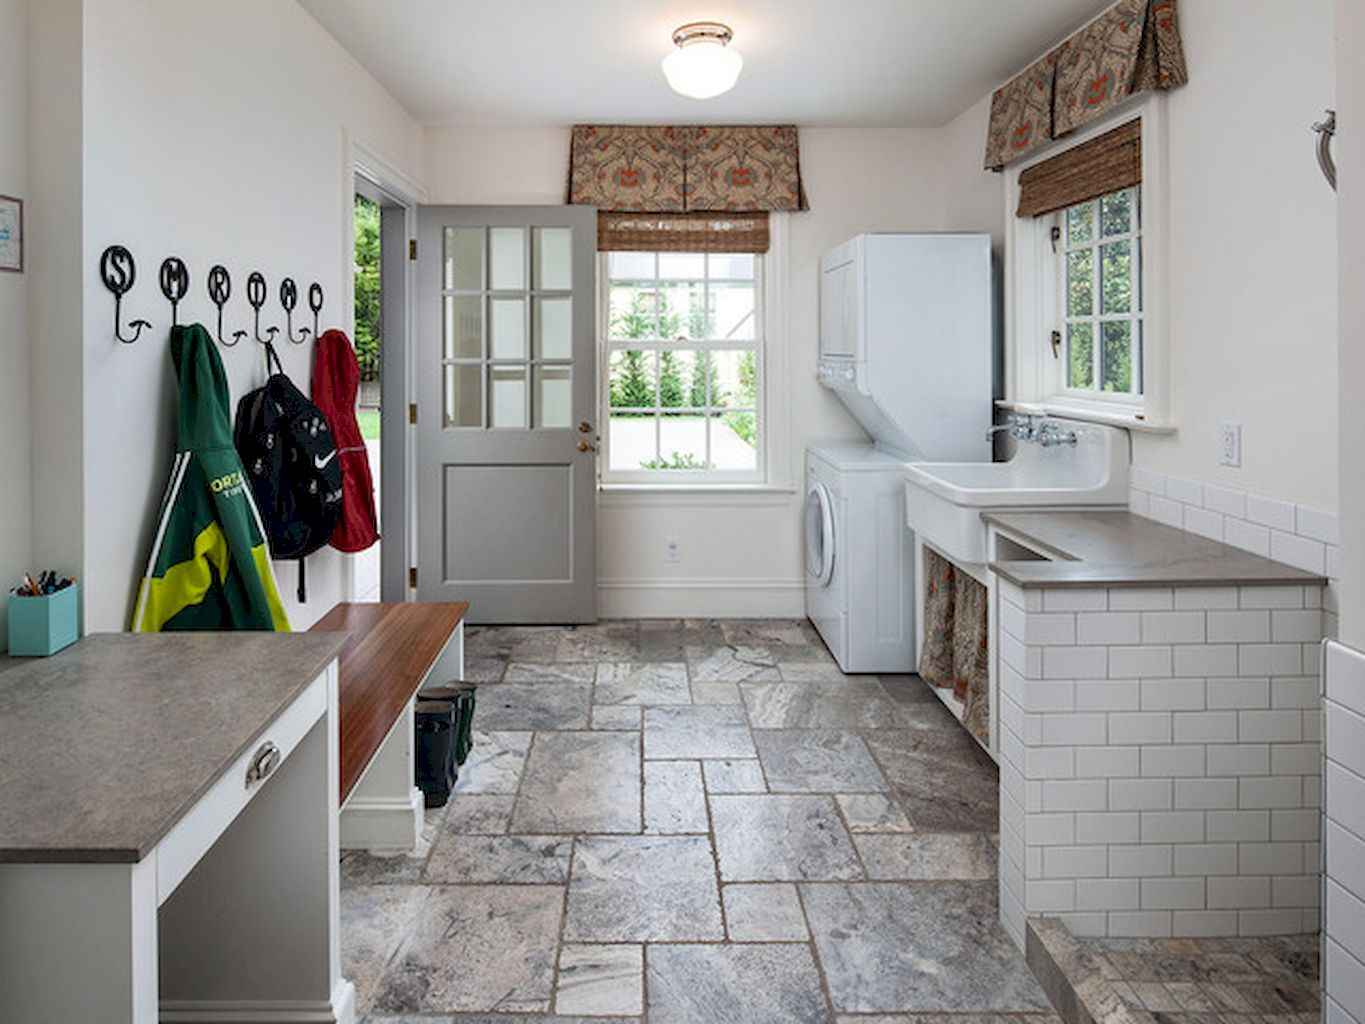 65 Cool Mudroom Design Ideas and Remodel (54)